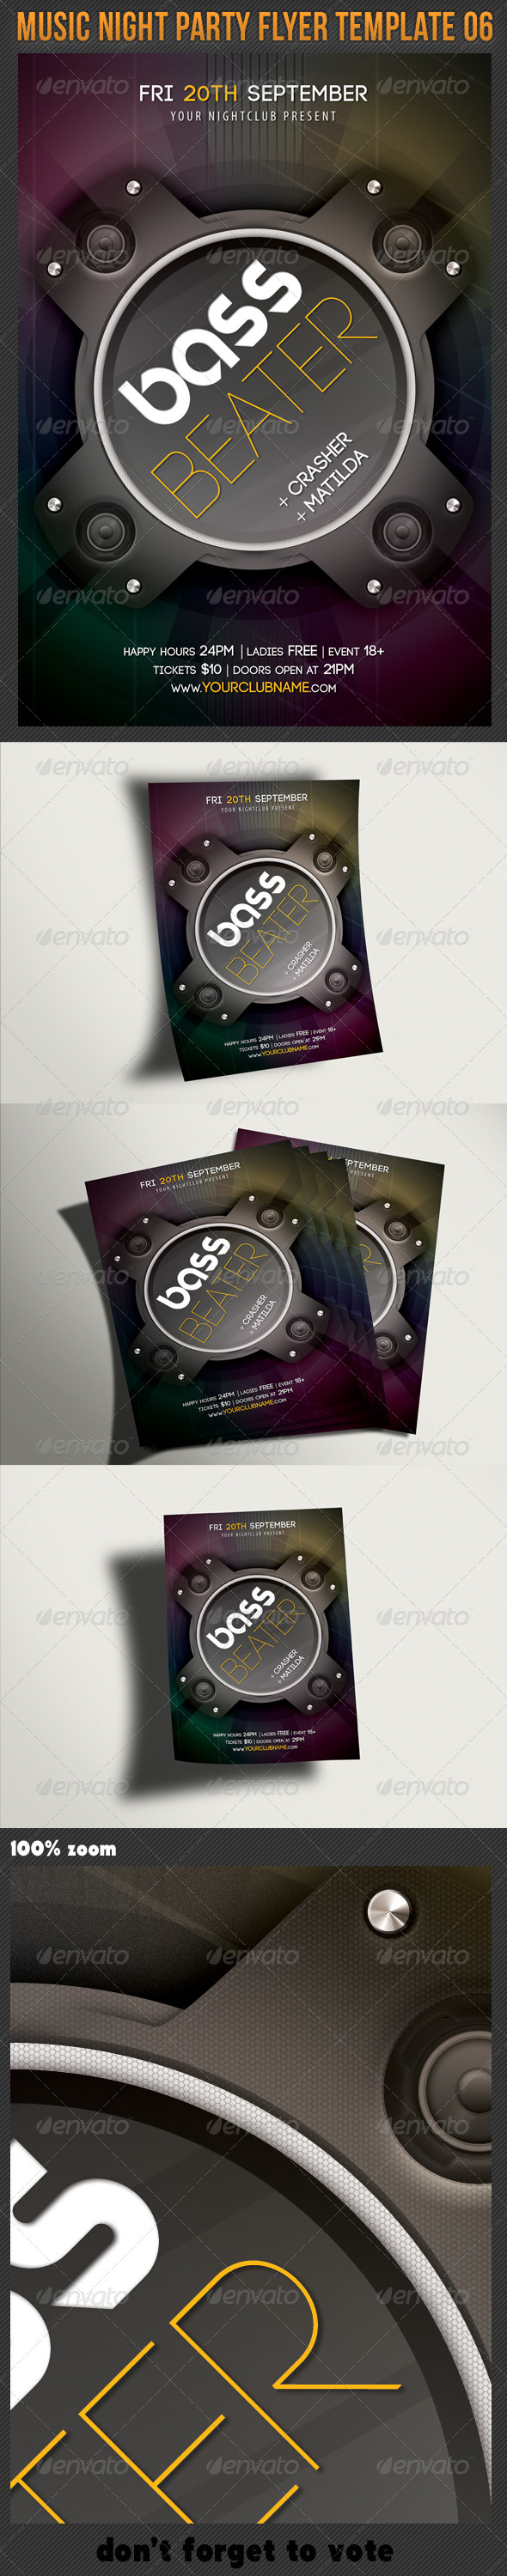 GraphicRiver Music Night Party Flyer Template 06 5846514